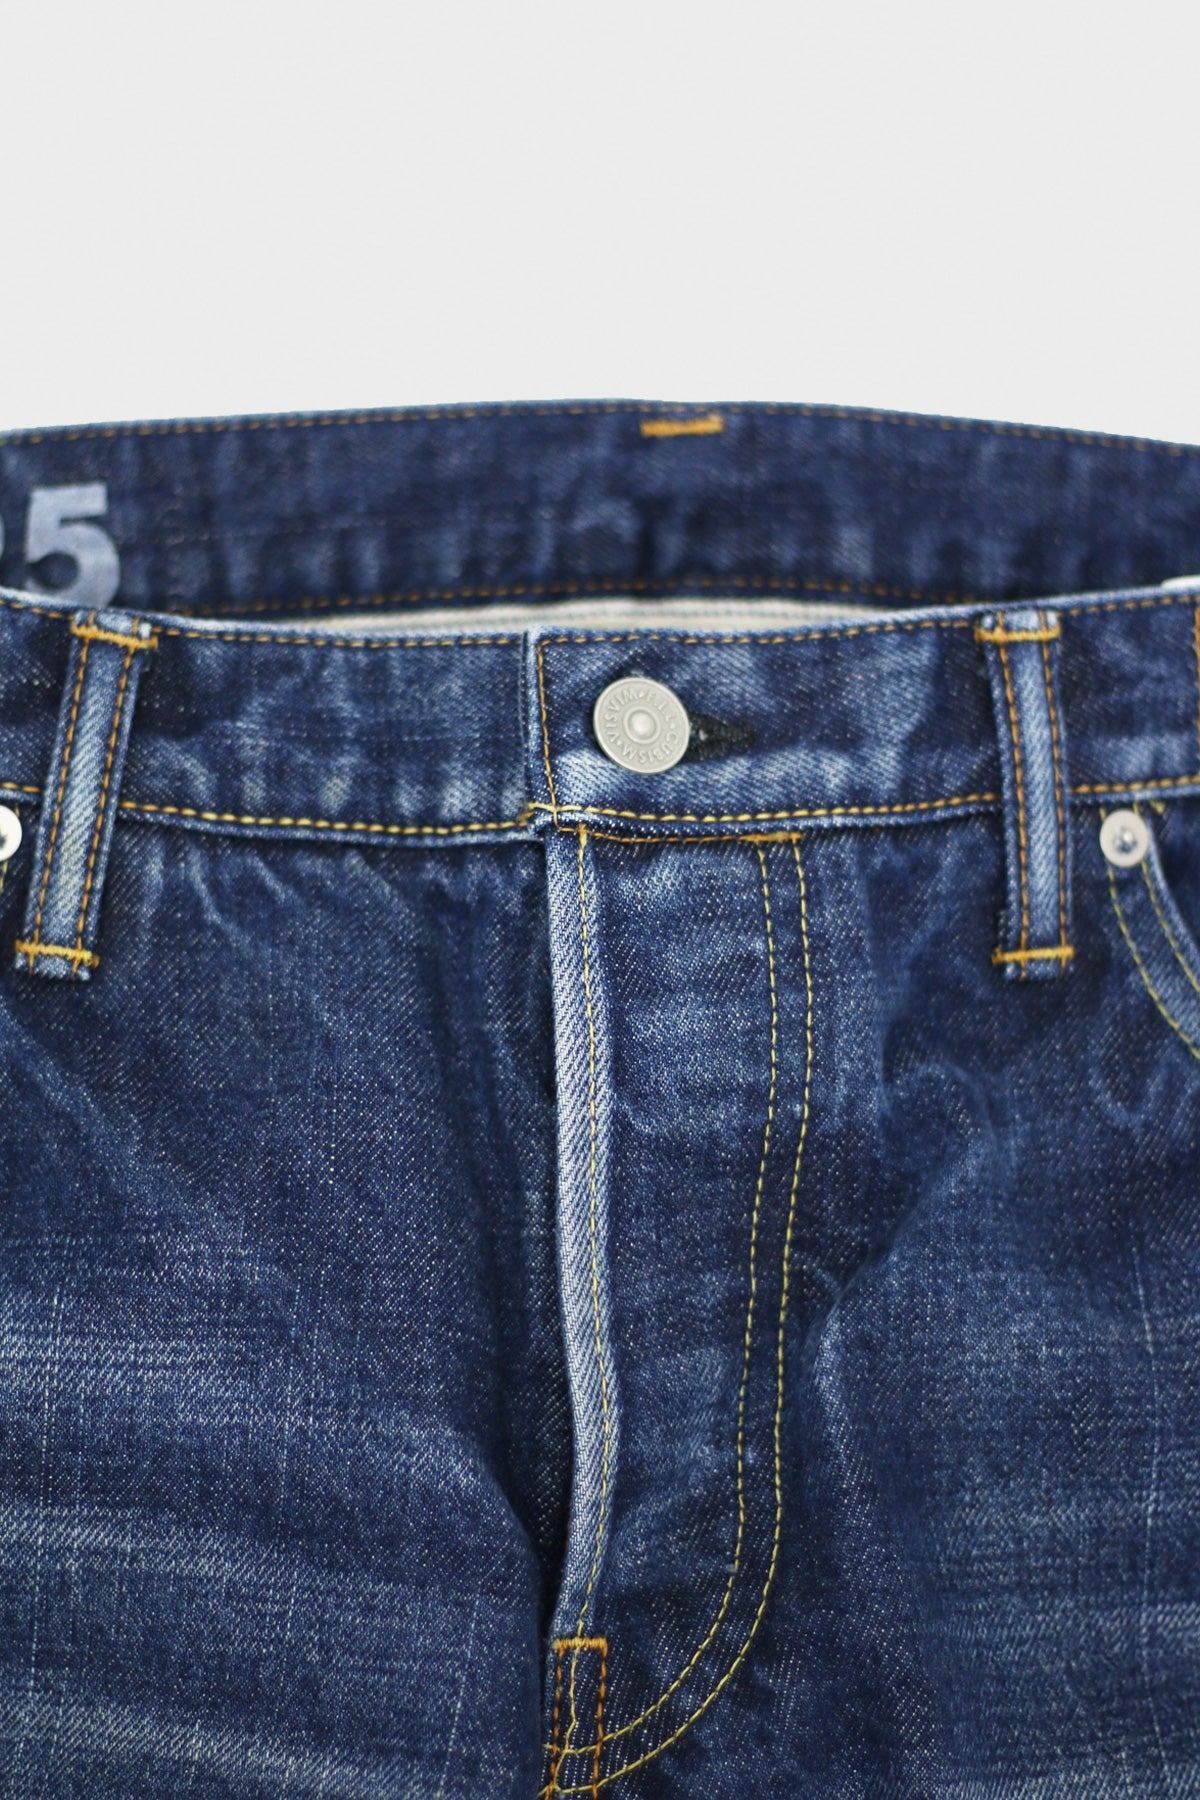 visvim Social Sculpture denim 10 Damaged - 25